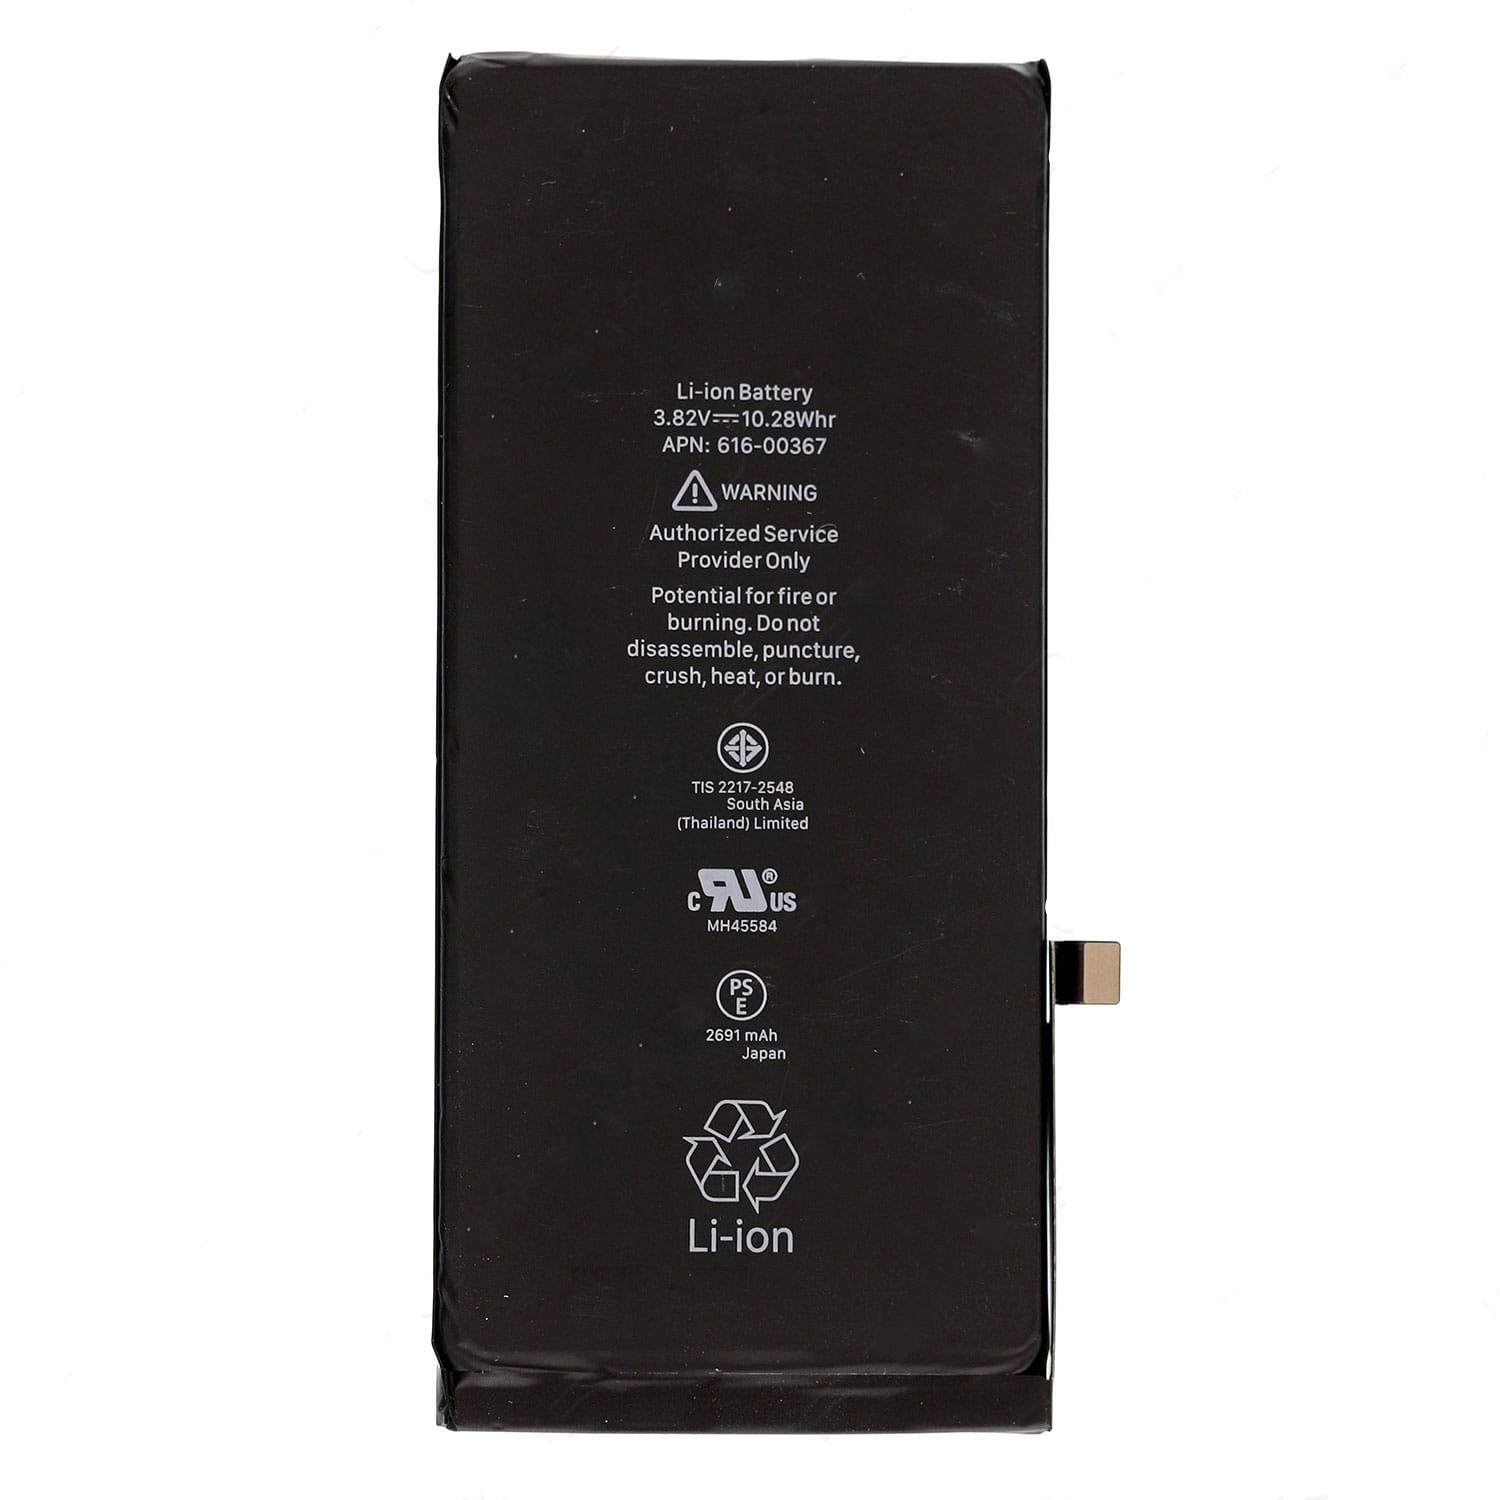 iPhone 8 Plus Replacement Battery - Brand New, I8B-005